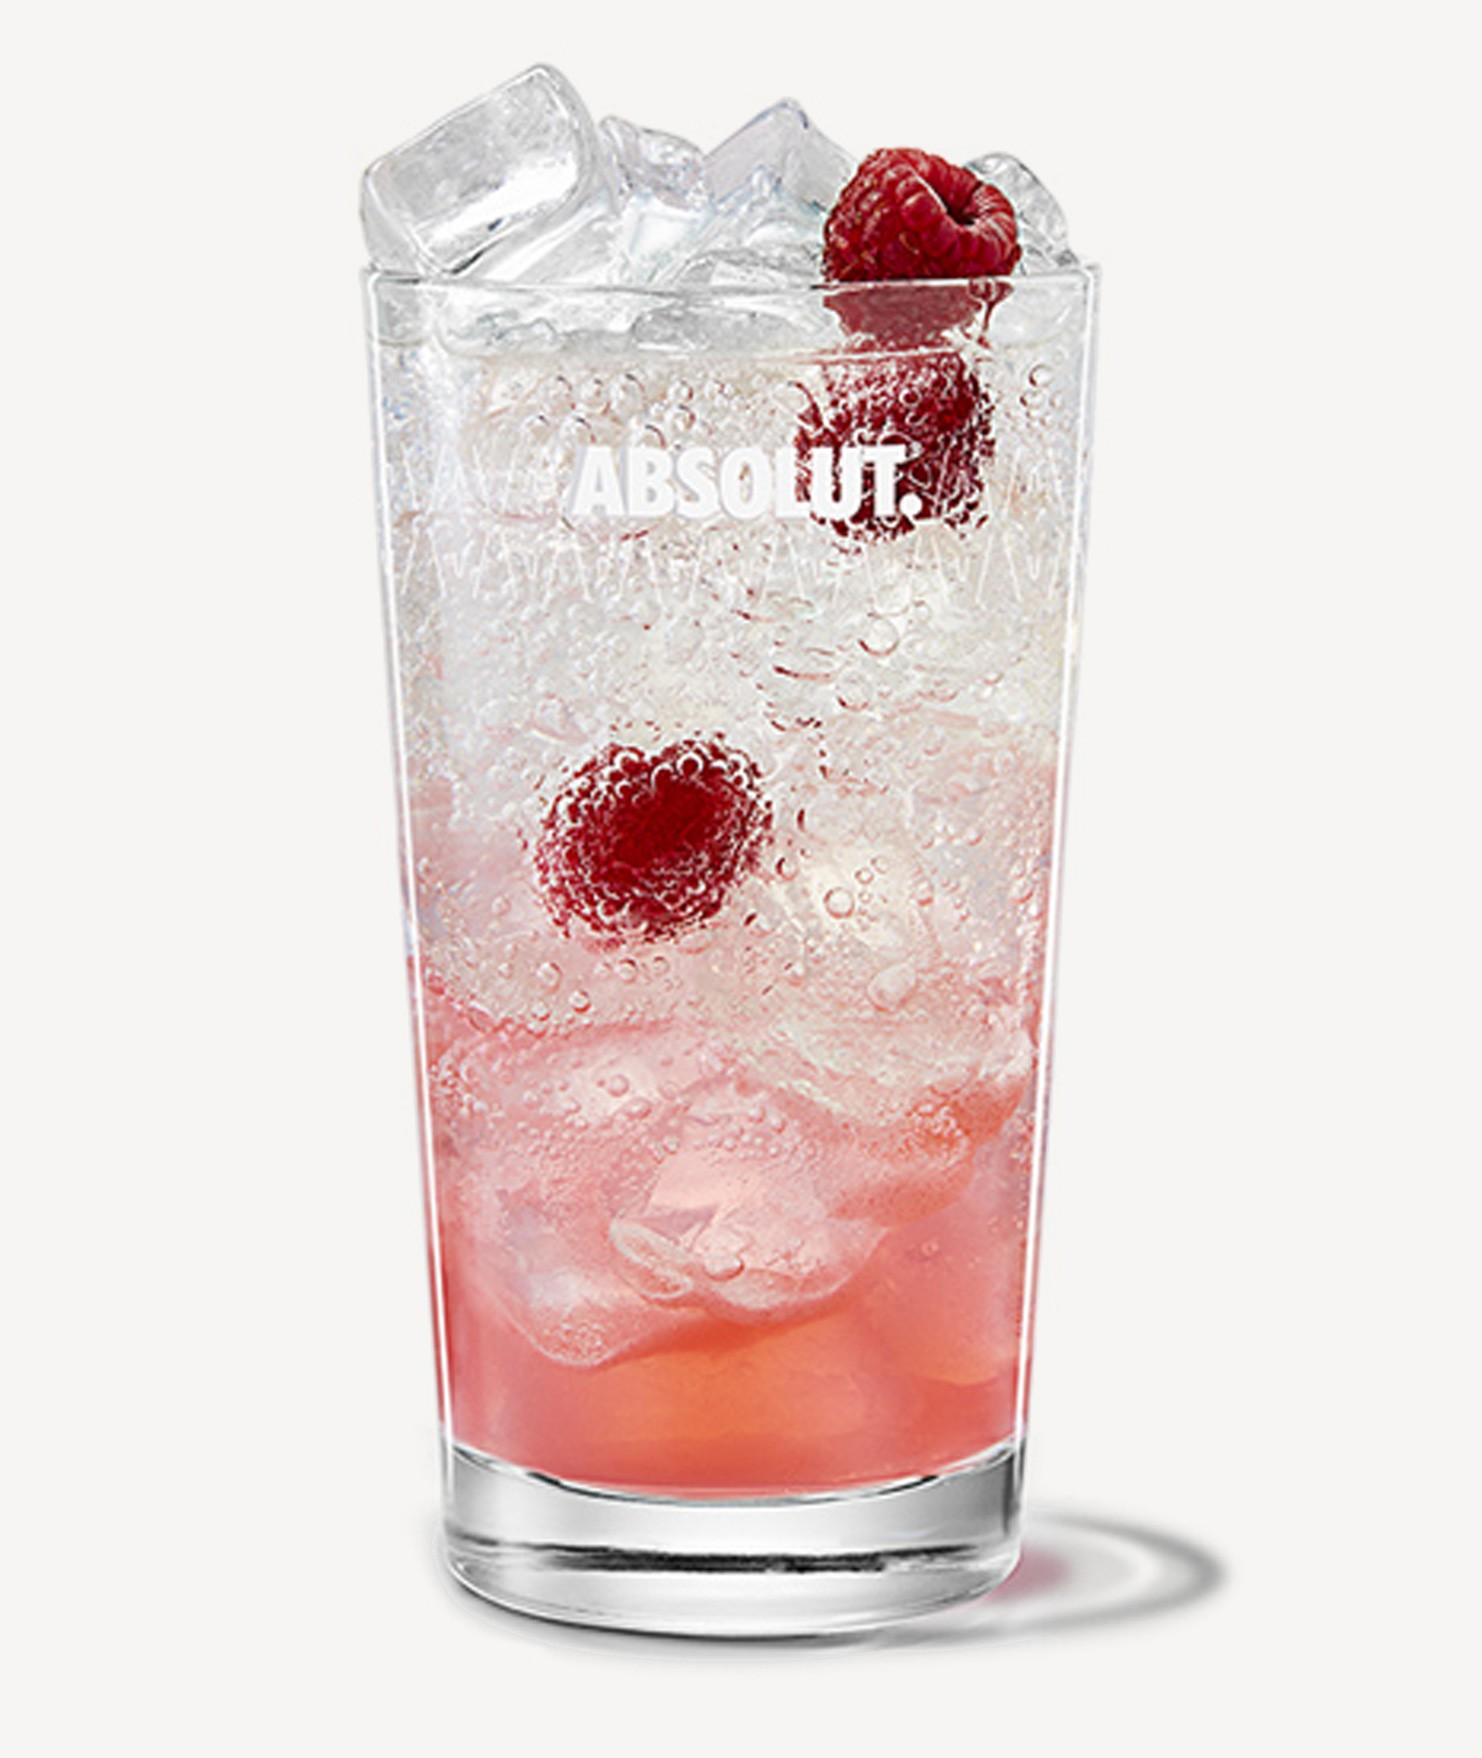 Raspberri Collins Photo